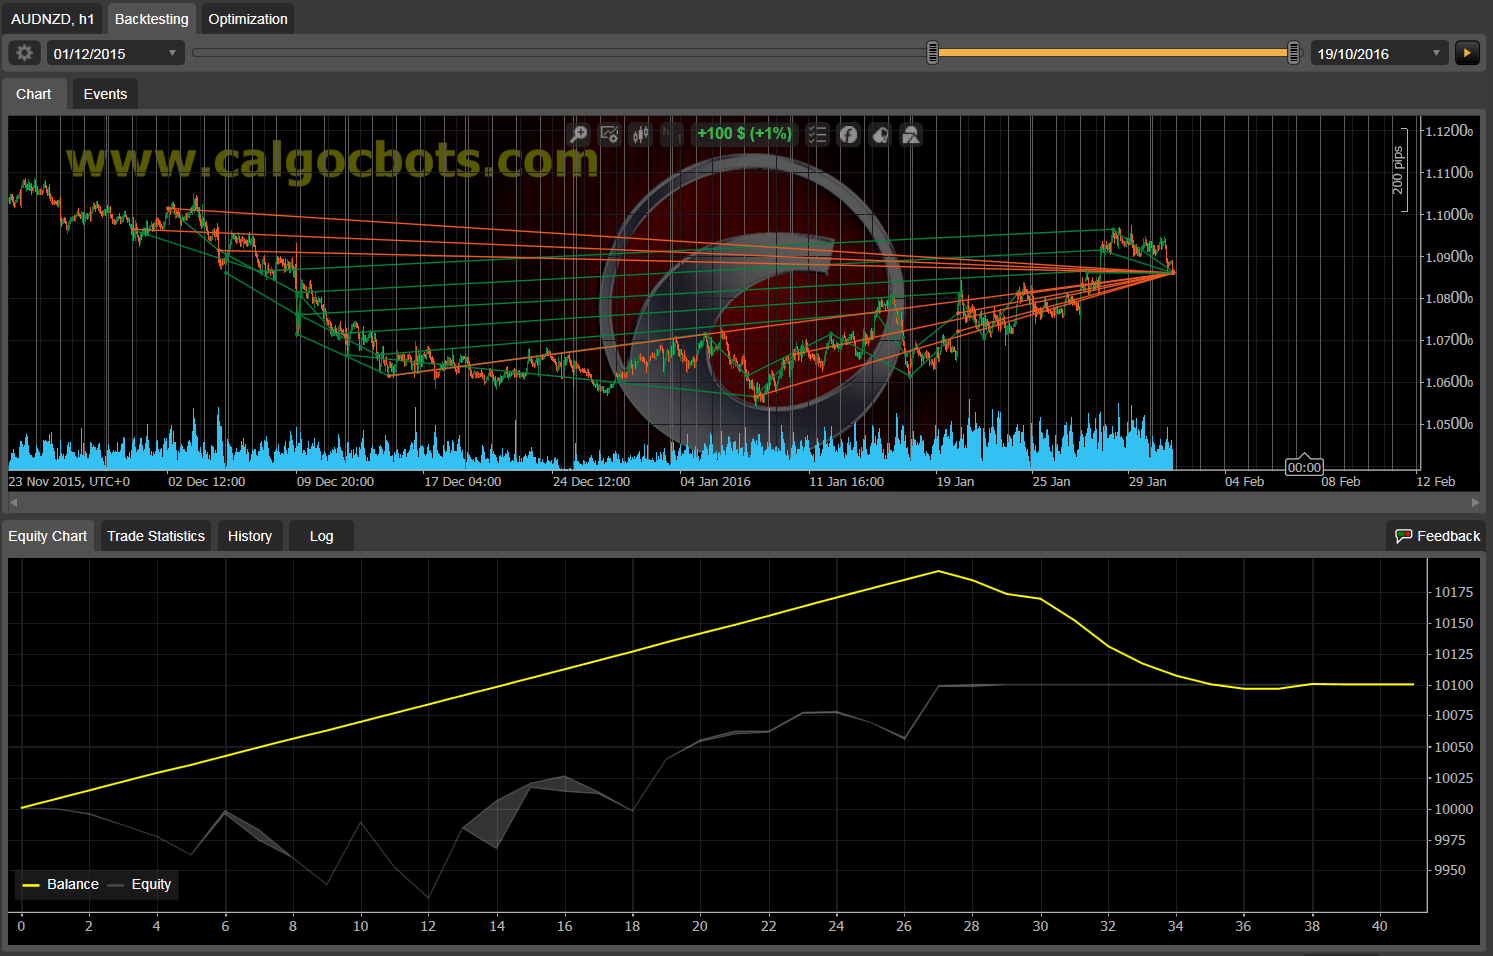 Dual Grid Hedge AUD NZD 1h cAlgo cBots cTrader 1k 100 50 100 - 05 a